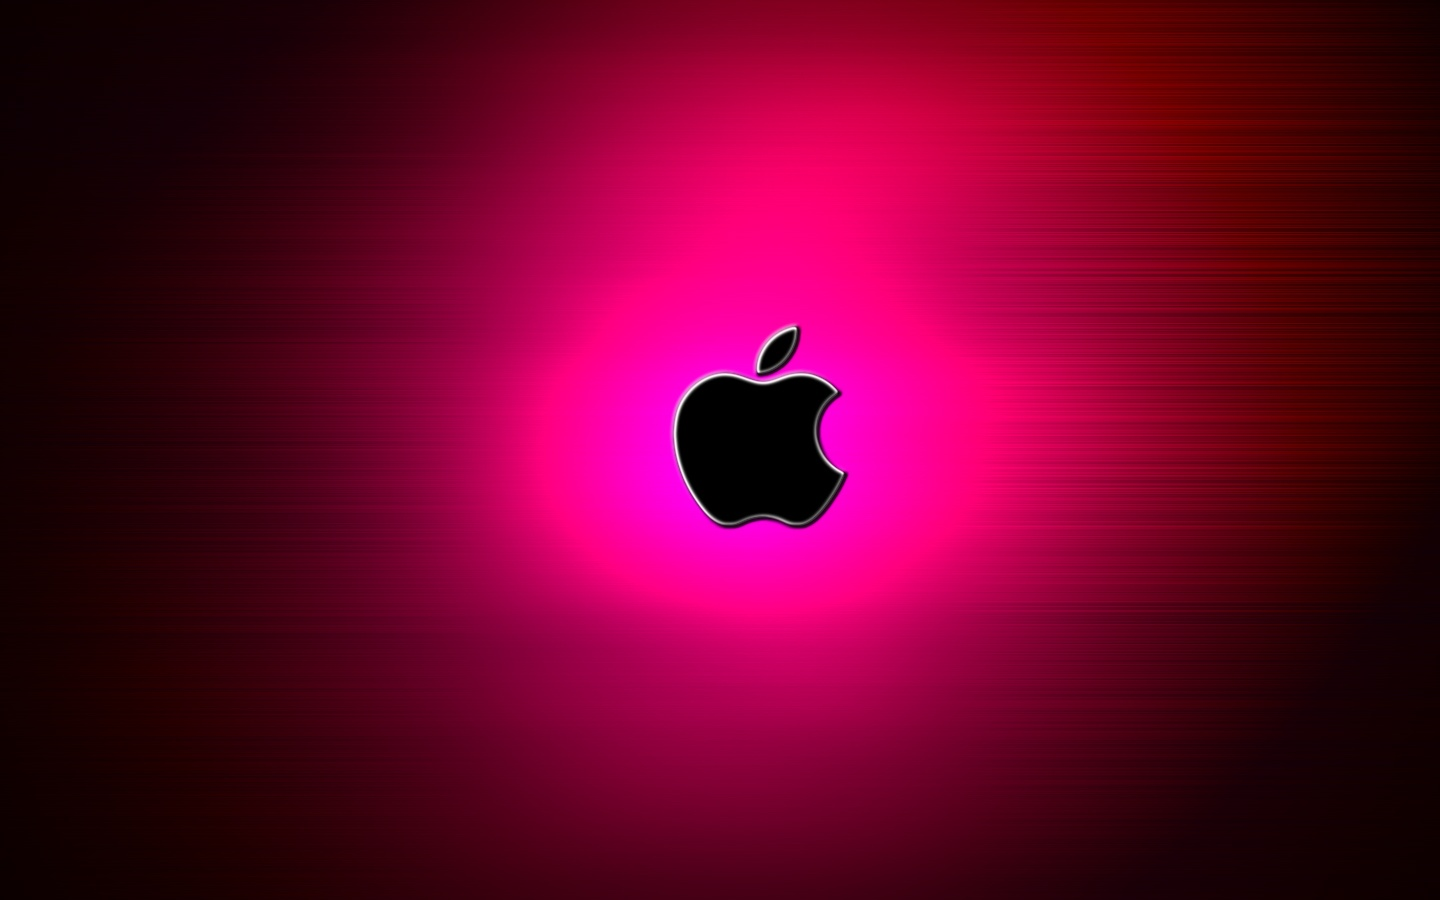 apple logo pink wallpapers 1440x900 168017